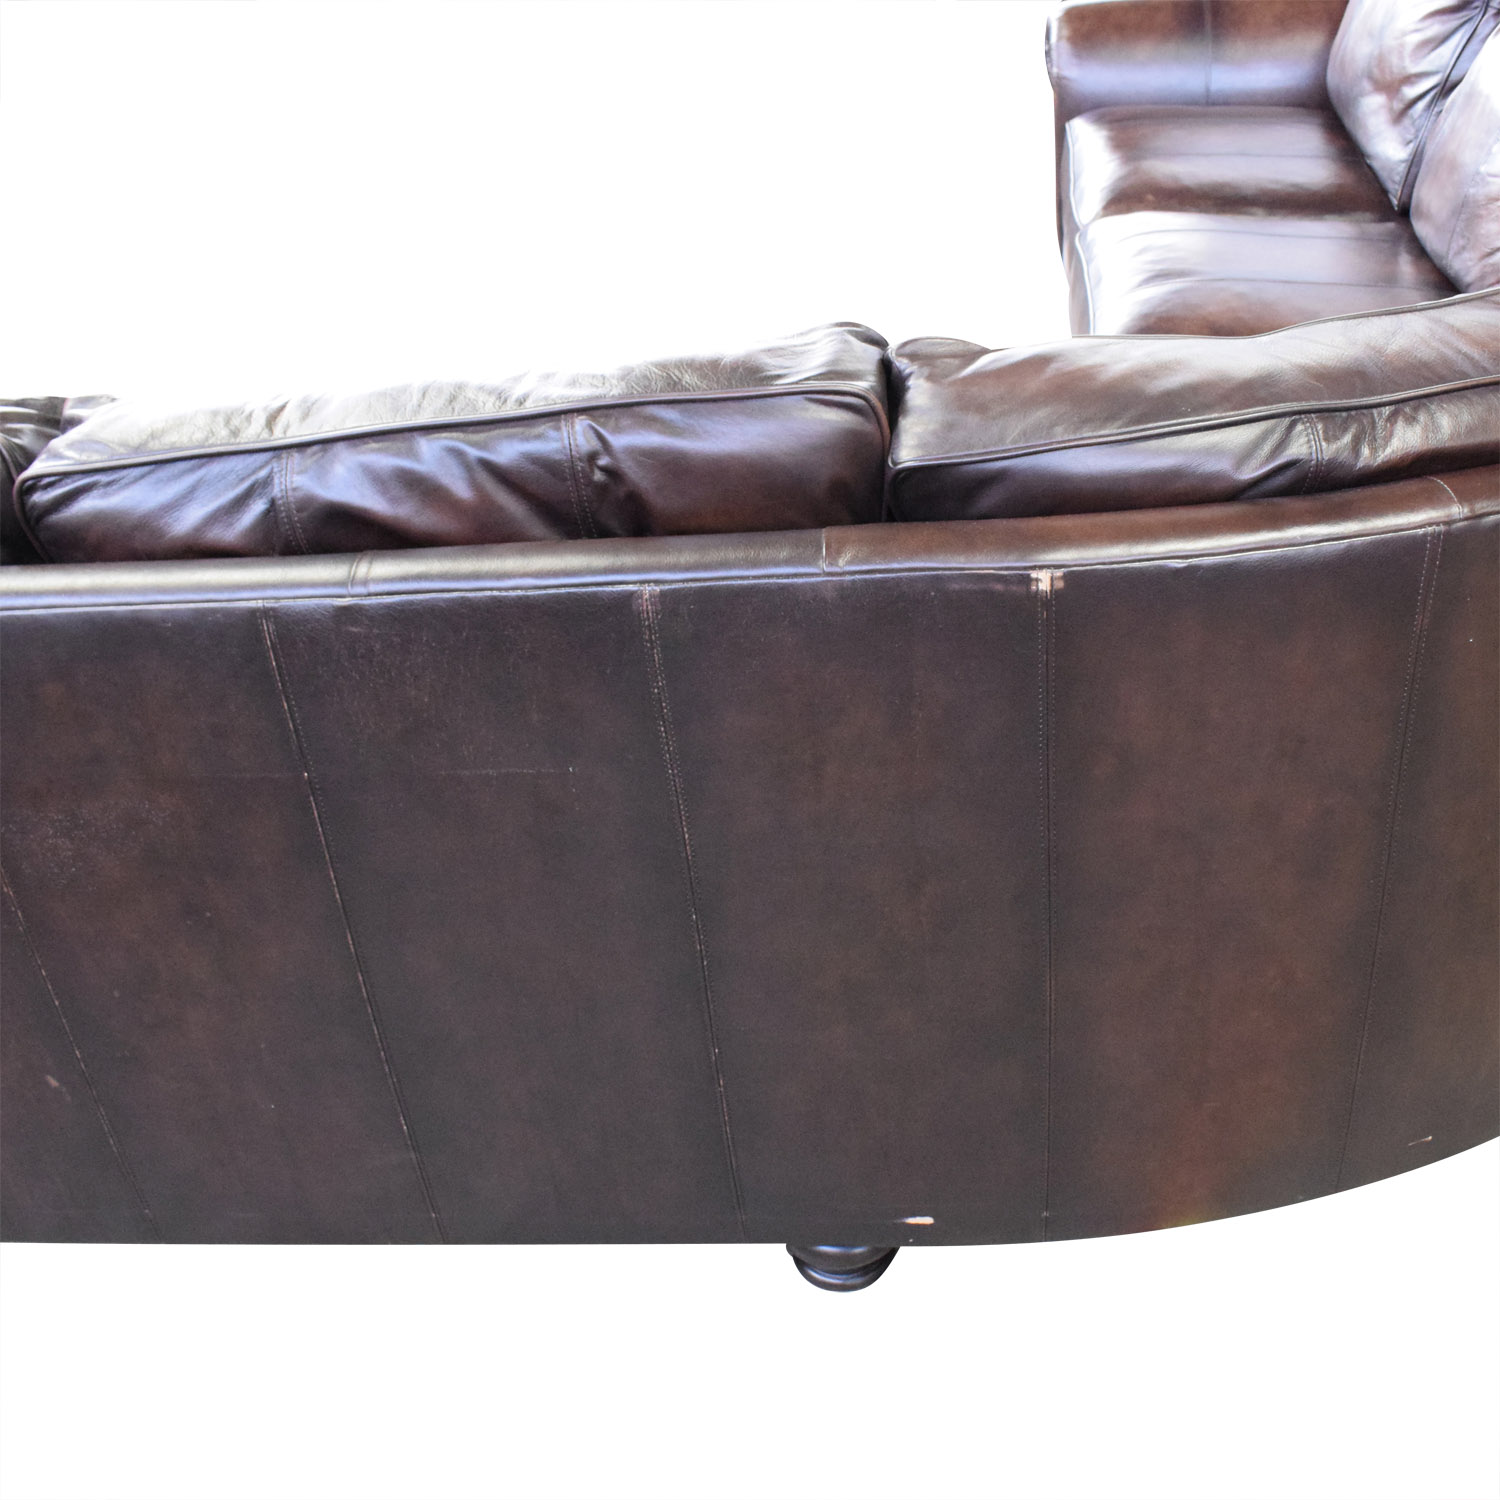 Superb 73 Off Bernhardt Bernhardt Brown Leather Sectional Sofas Gmtry Best Dining Table And Chair Ideas Images Gmtryco